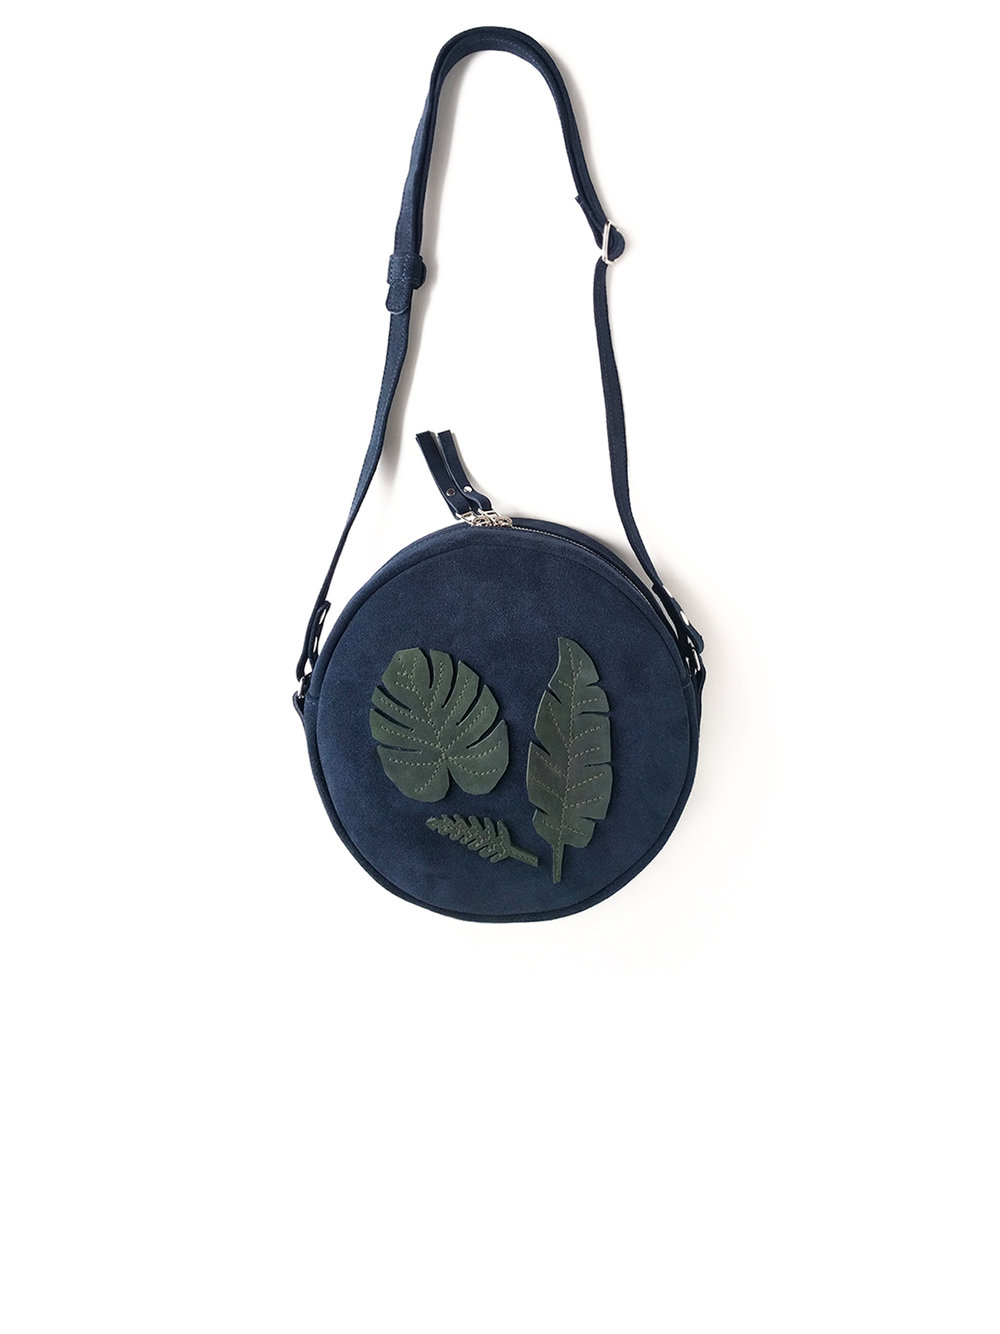 Leaves appliqué Orbit handbag - 200.00$